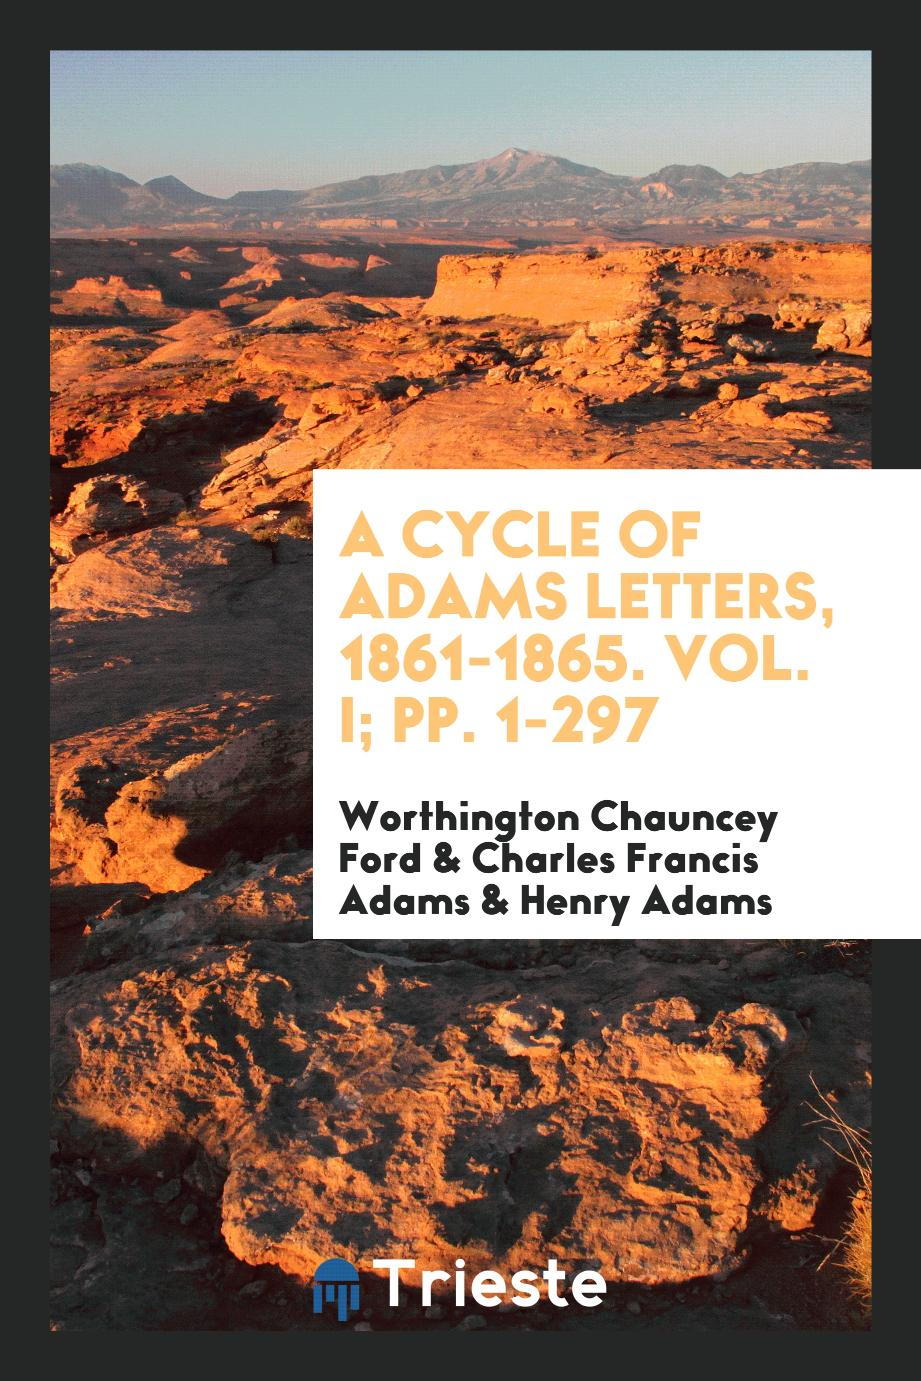 A Cycle of Adams Letters, 1861-1865. Vol. I; pp. 1-297